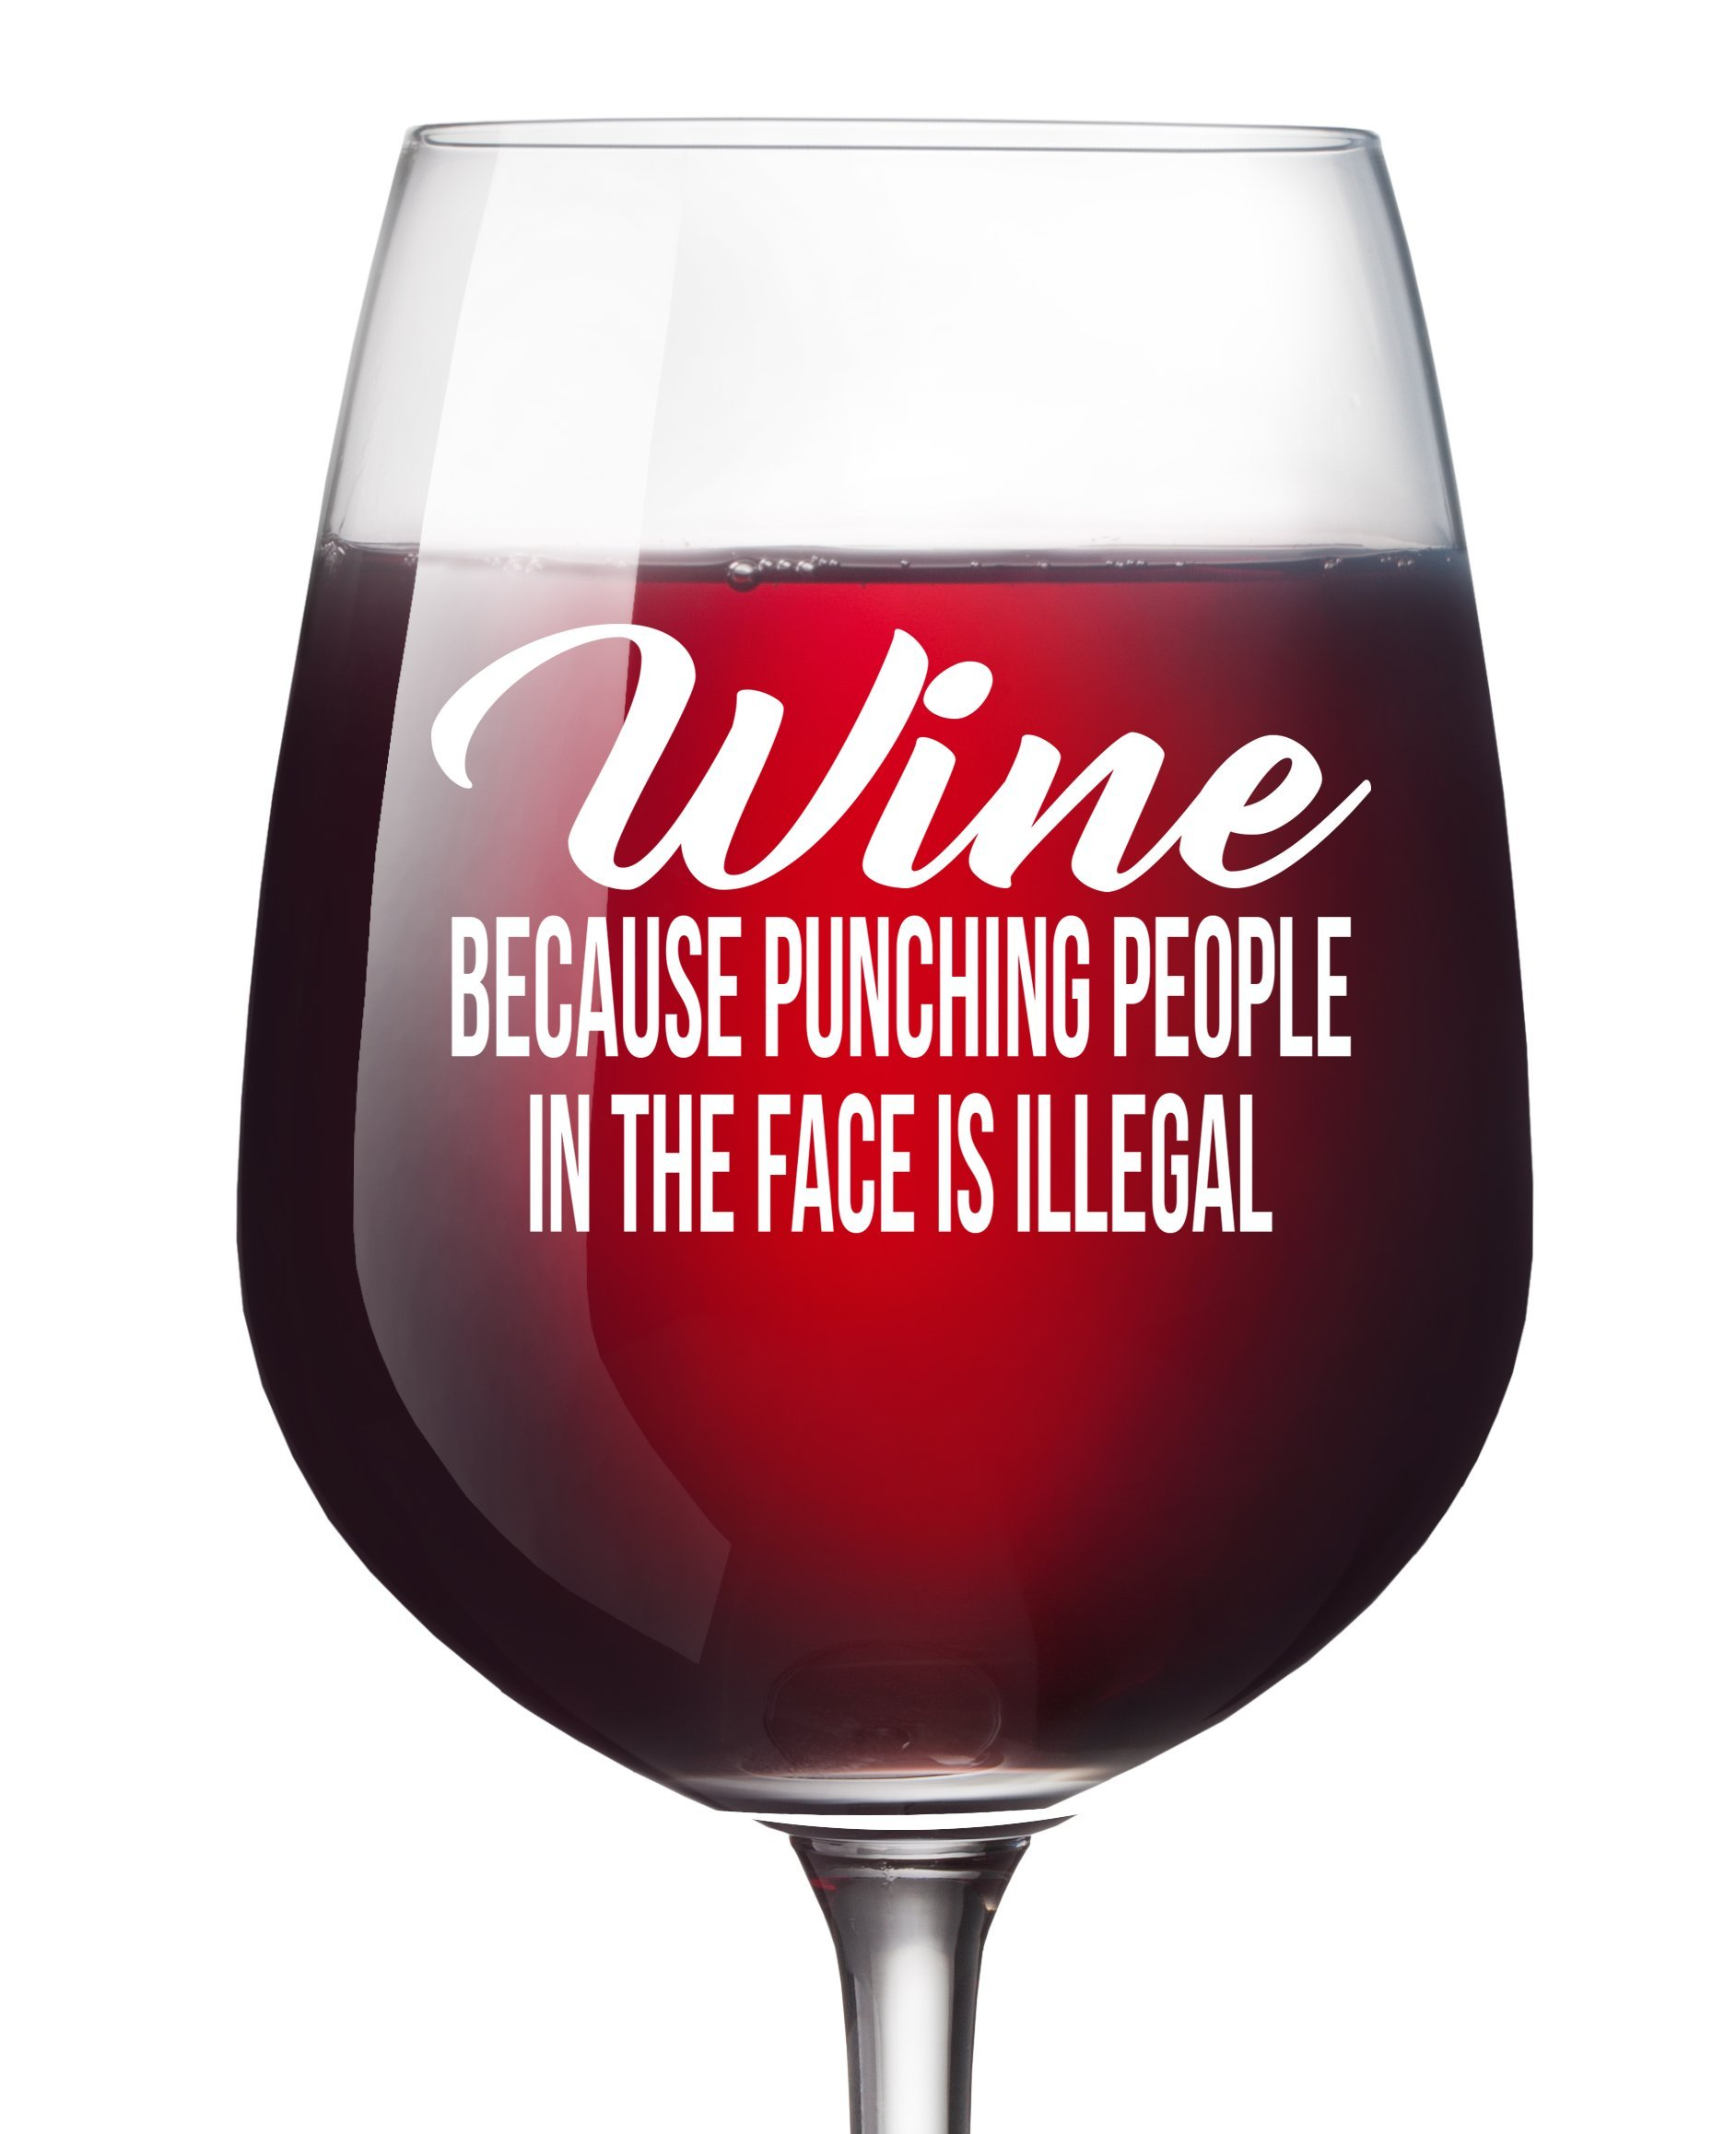 Wine Because Punching Funny Wine Glass for Women Mothers Day Men Novelty Christmas or Birthday Gift for Wife Mom Girlfriend Sister Boss Best Friend BFF Coworker or Daughter 13 oz